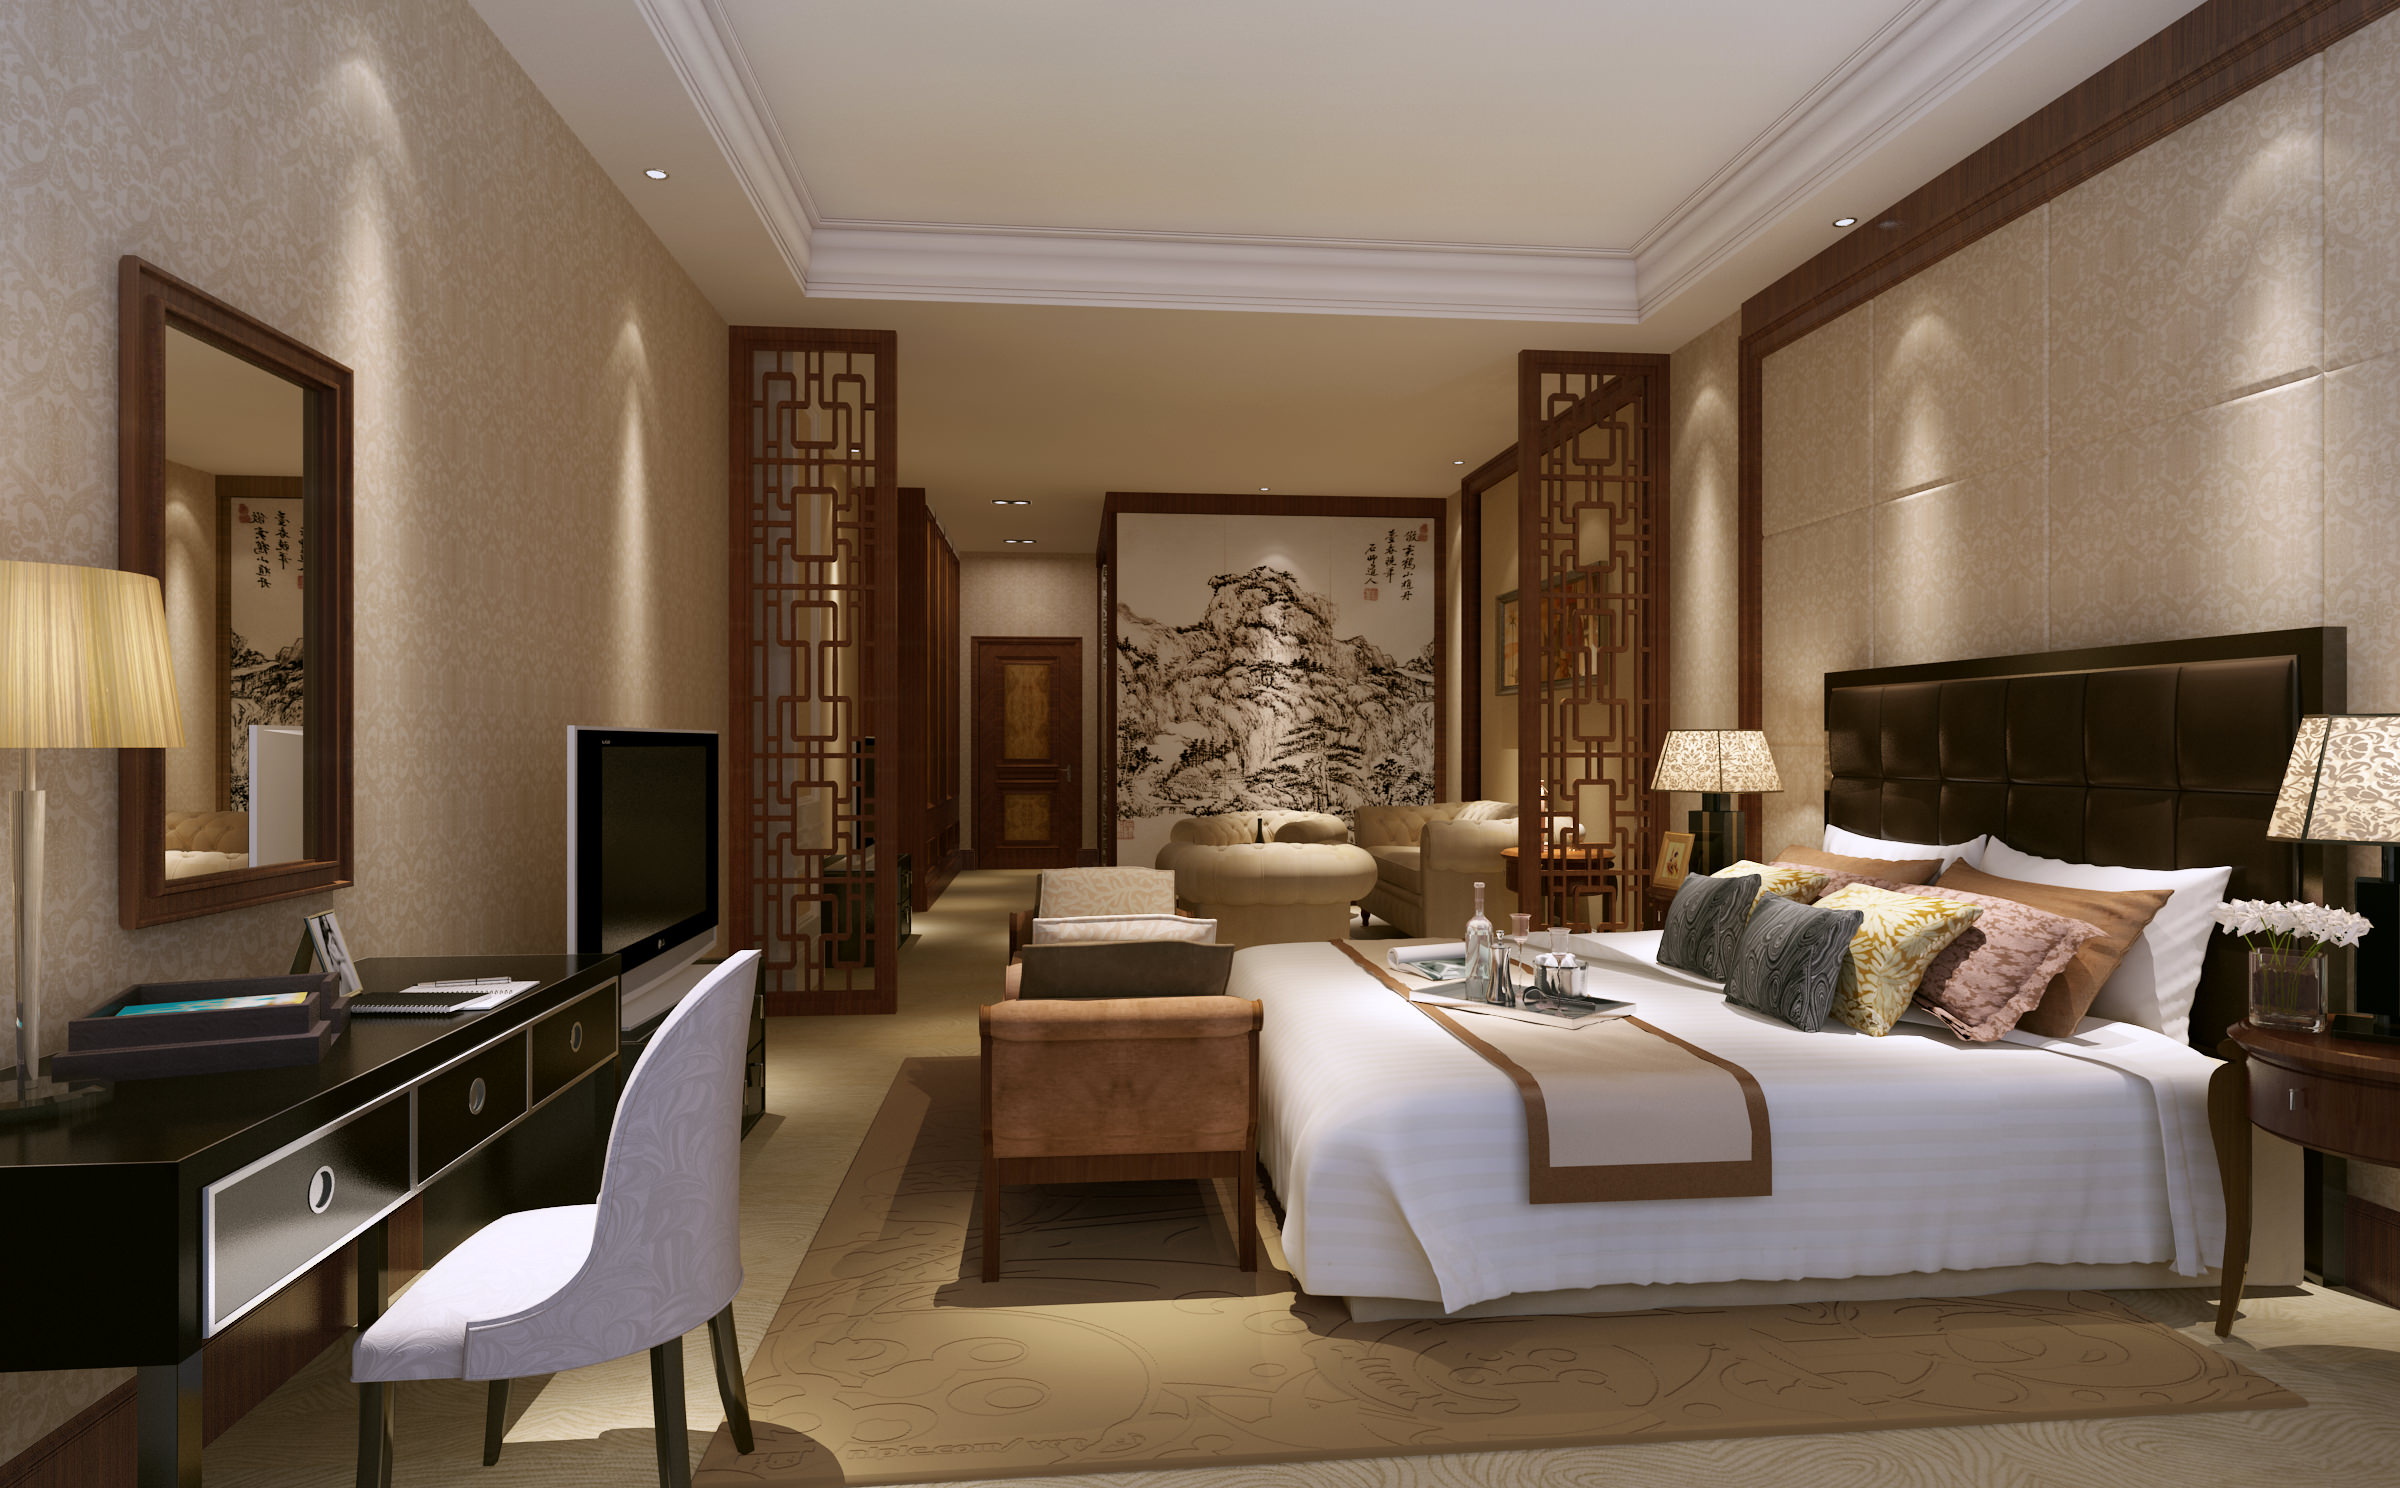 Model Bedroom Mesmerizing Gorgeous Bedroom 3D Model  Cgtrader Inspiration